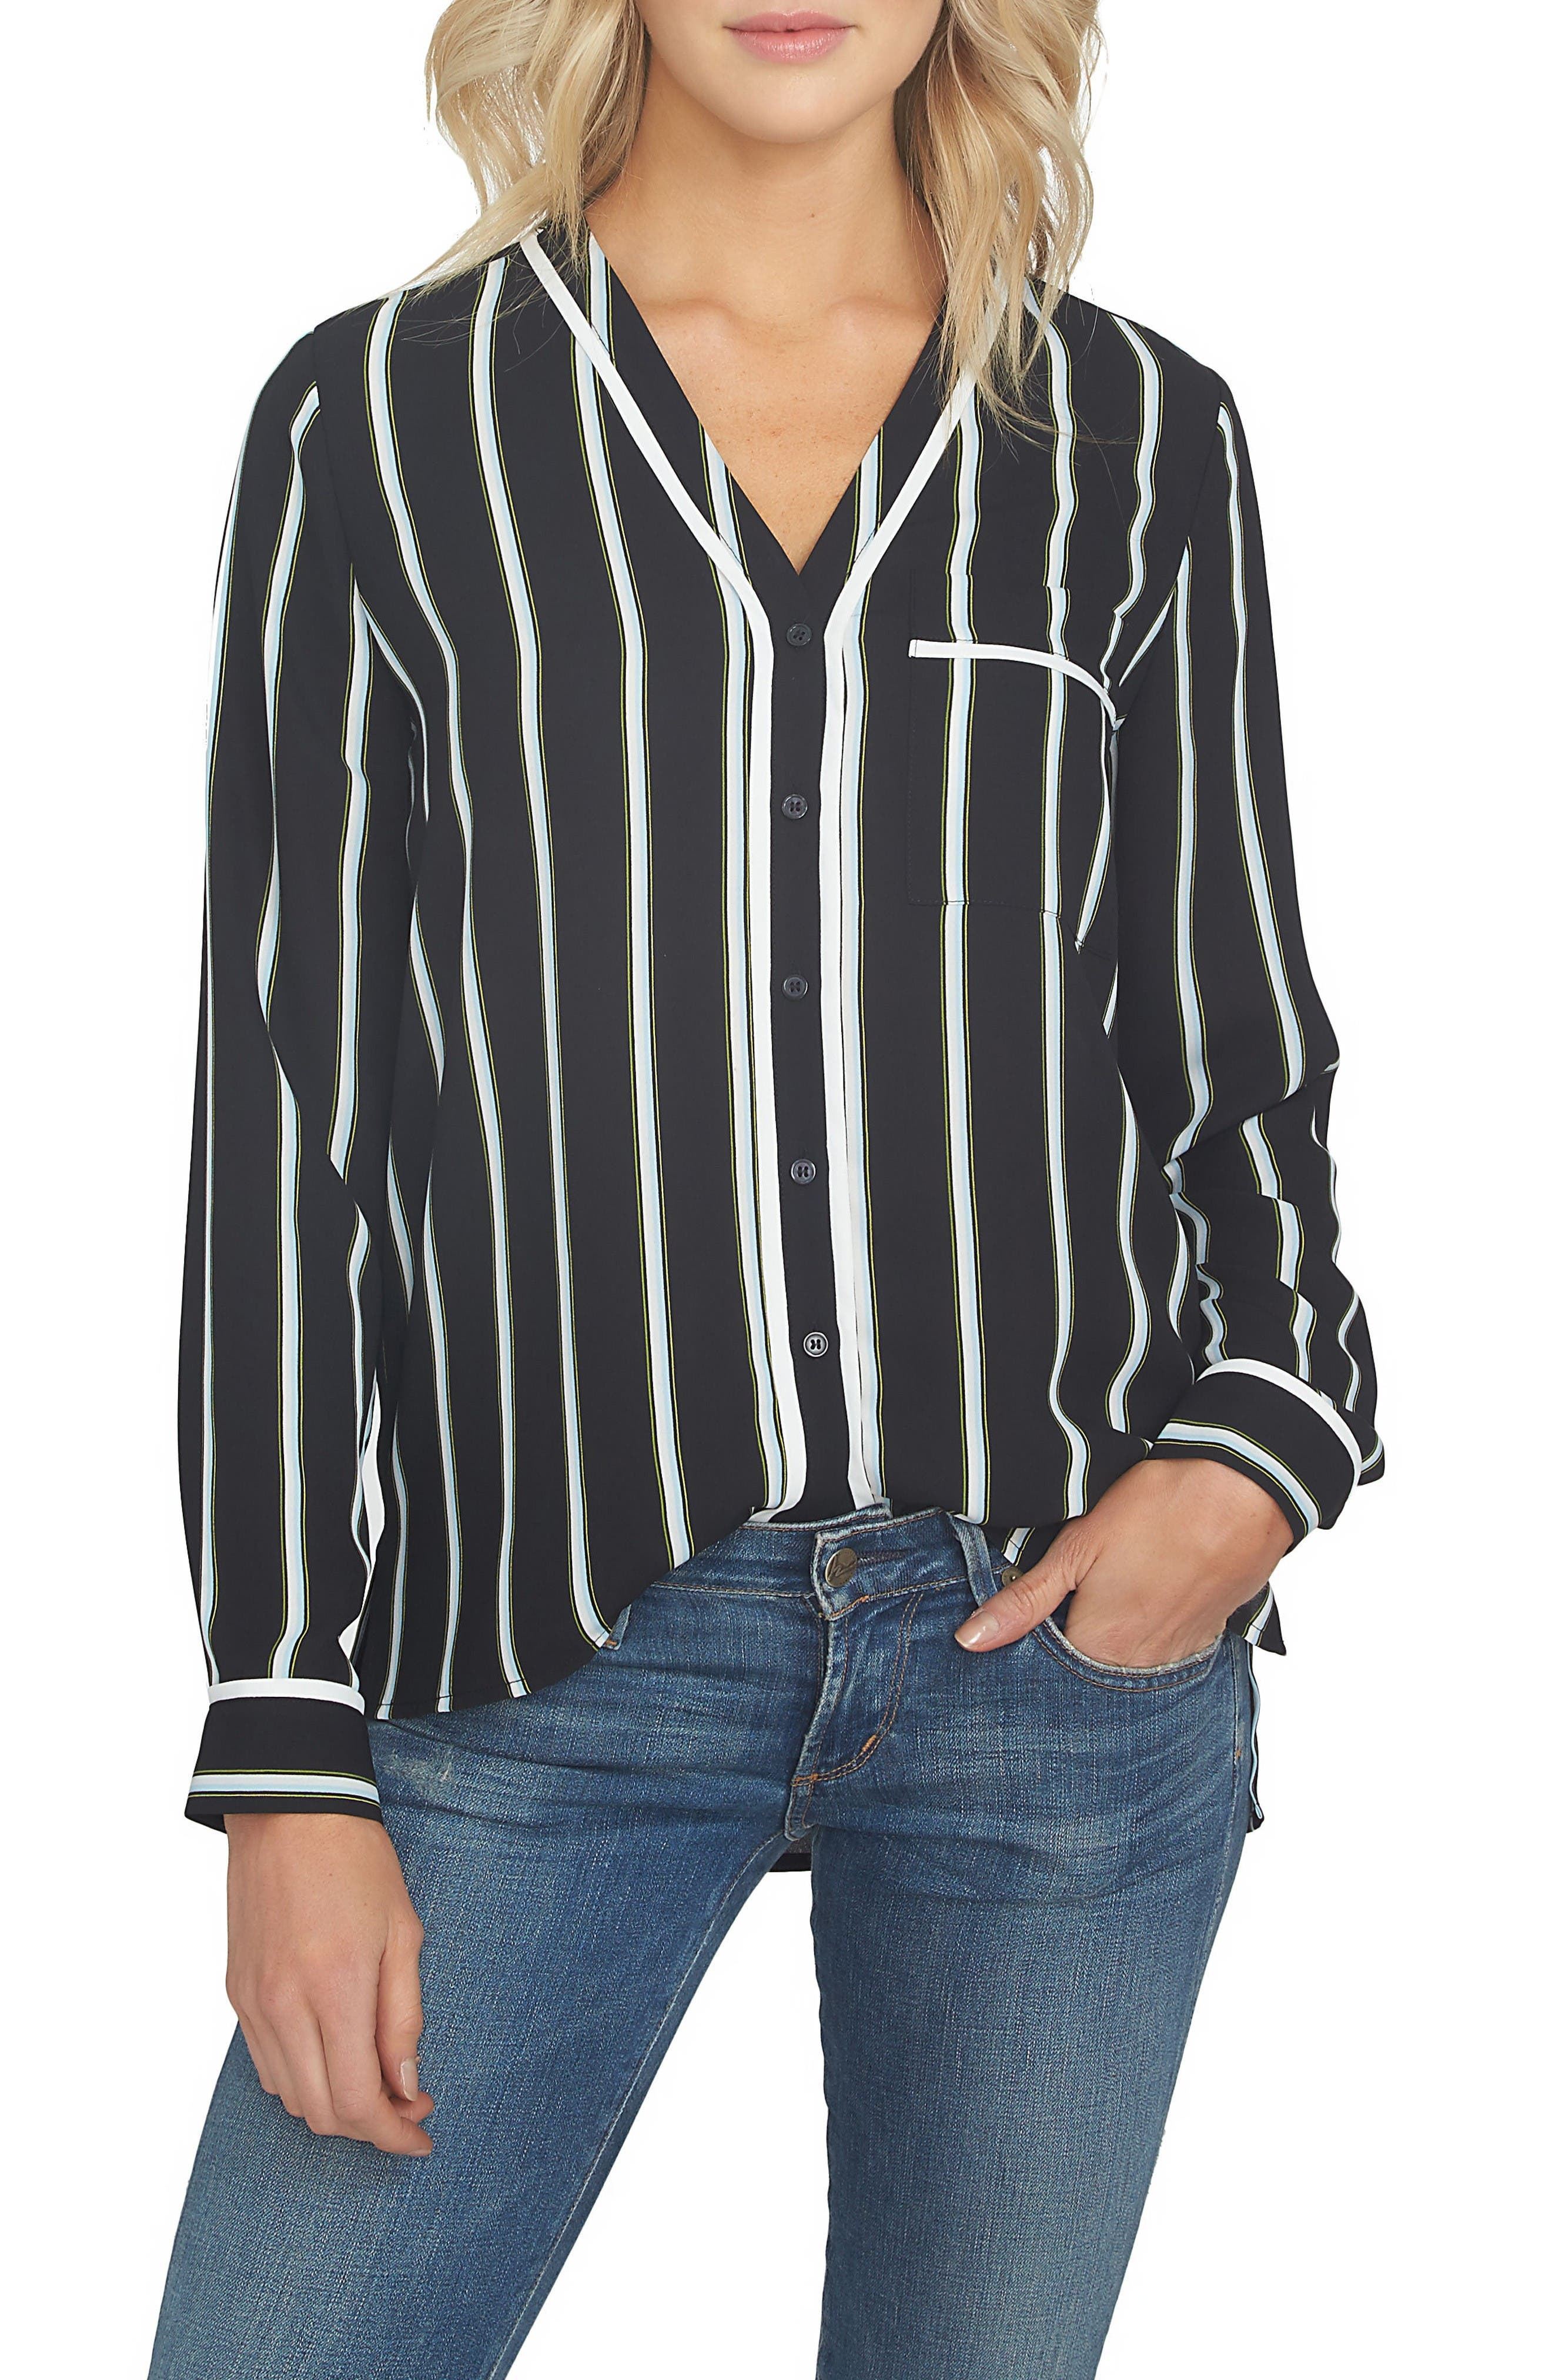 Main Image - 1.STATE Stripe High/Low Blouse